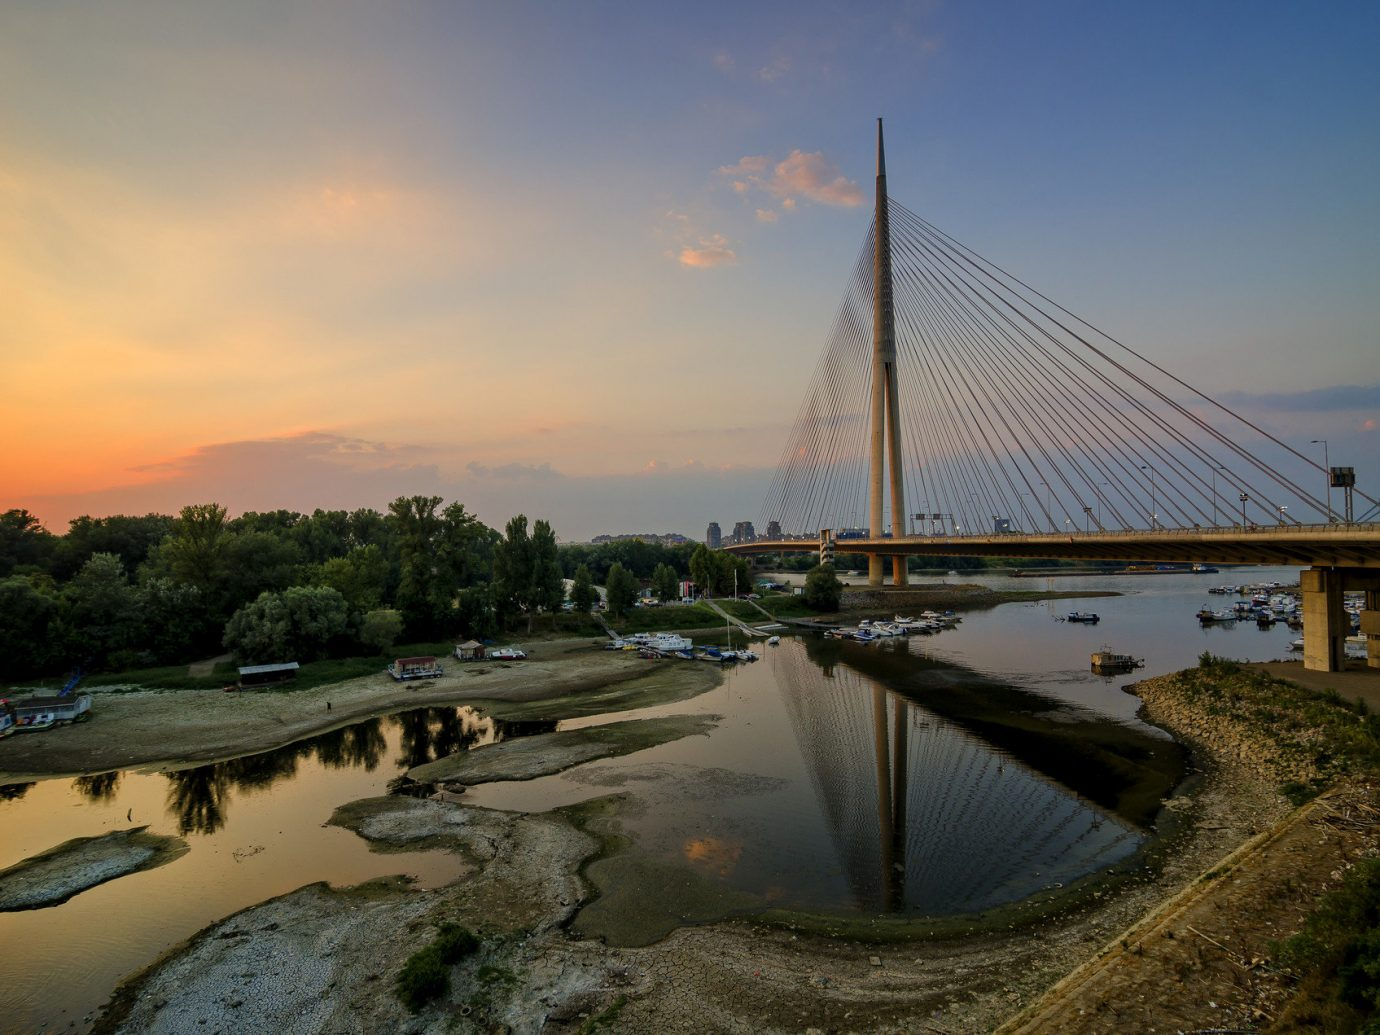 Trip Ideas sky outdoor water bridge River reflection cloud Sea Sunset morning dusk evening Coast Nature dawn cable stayed bridge sunrise bay sunlight nonbuilding structure cityscape shore land several distance